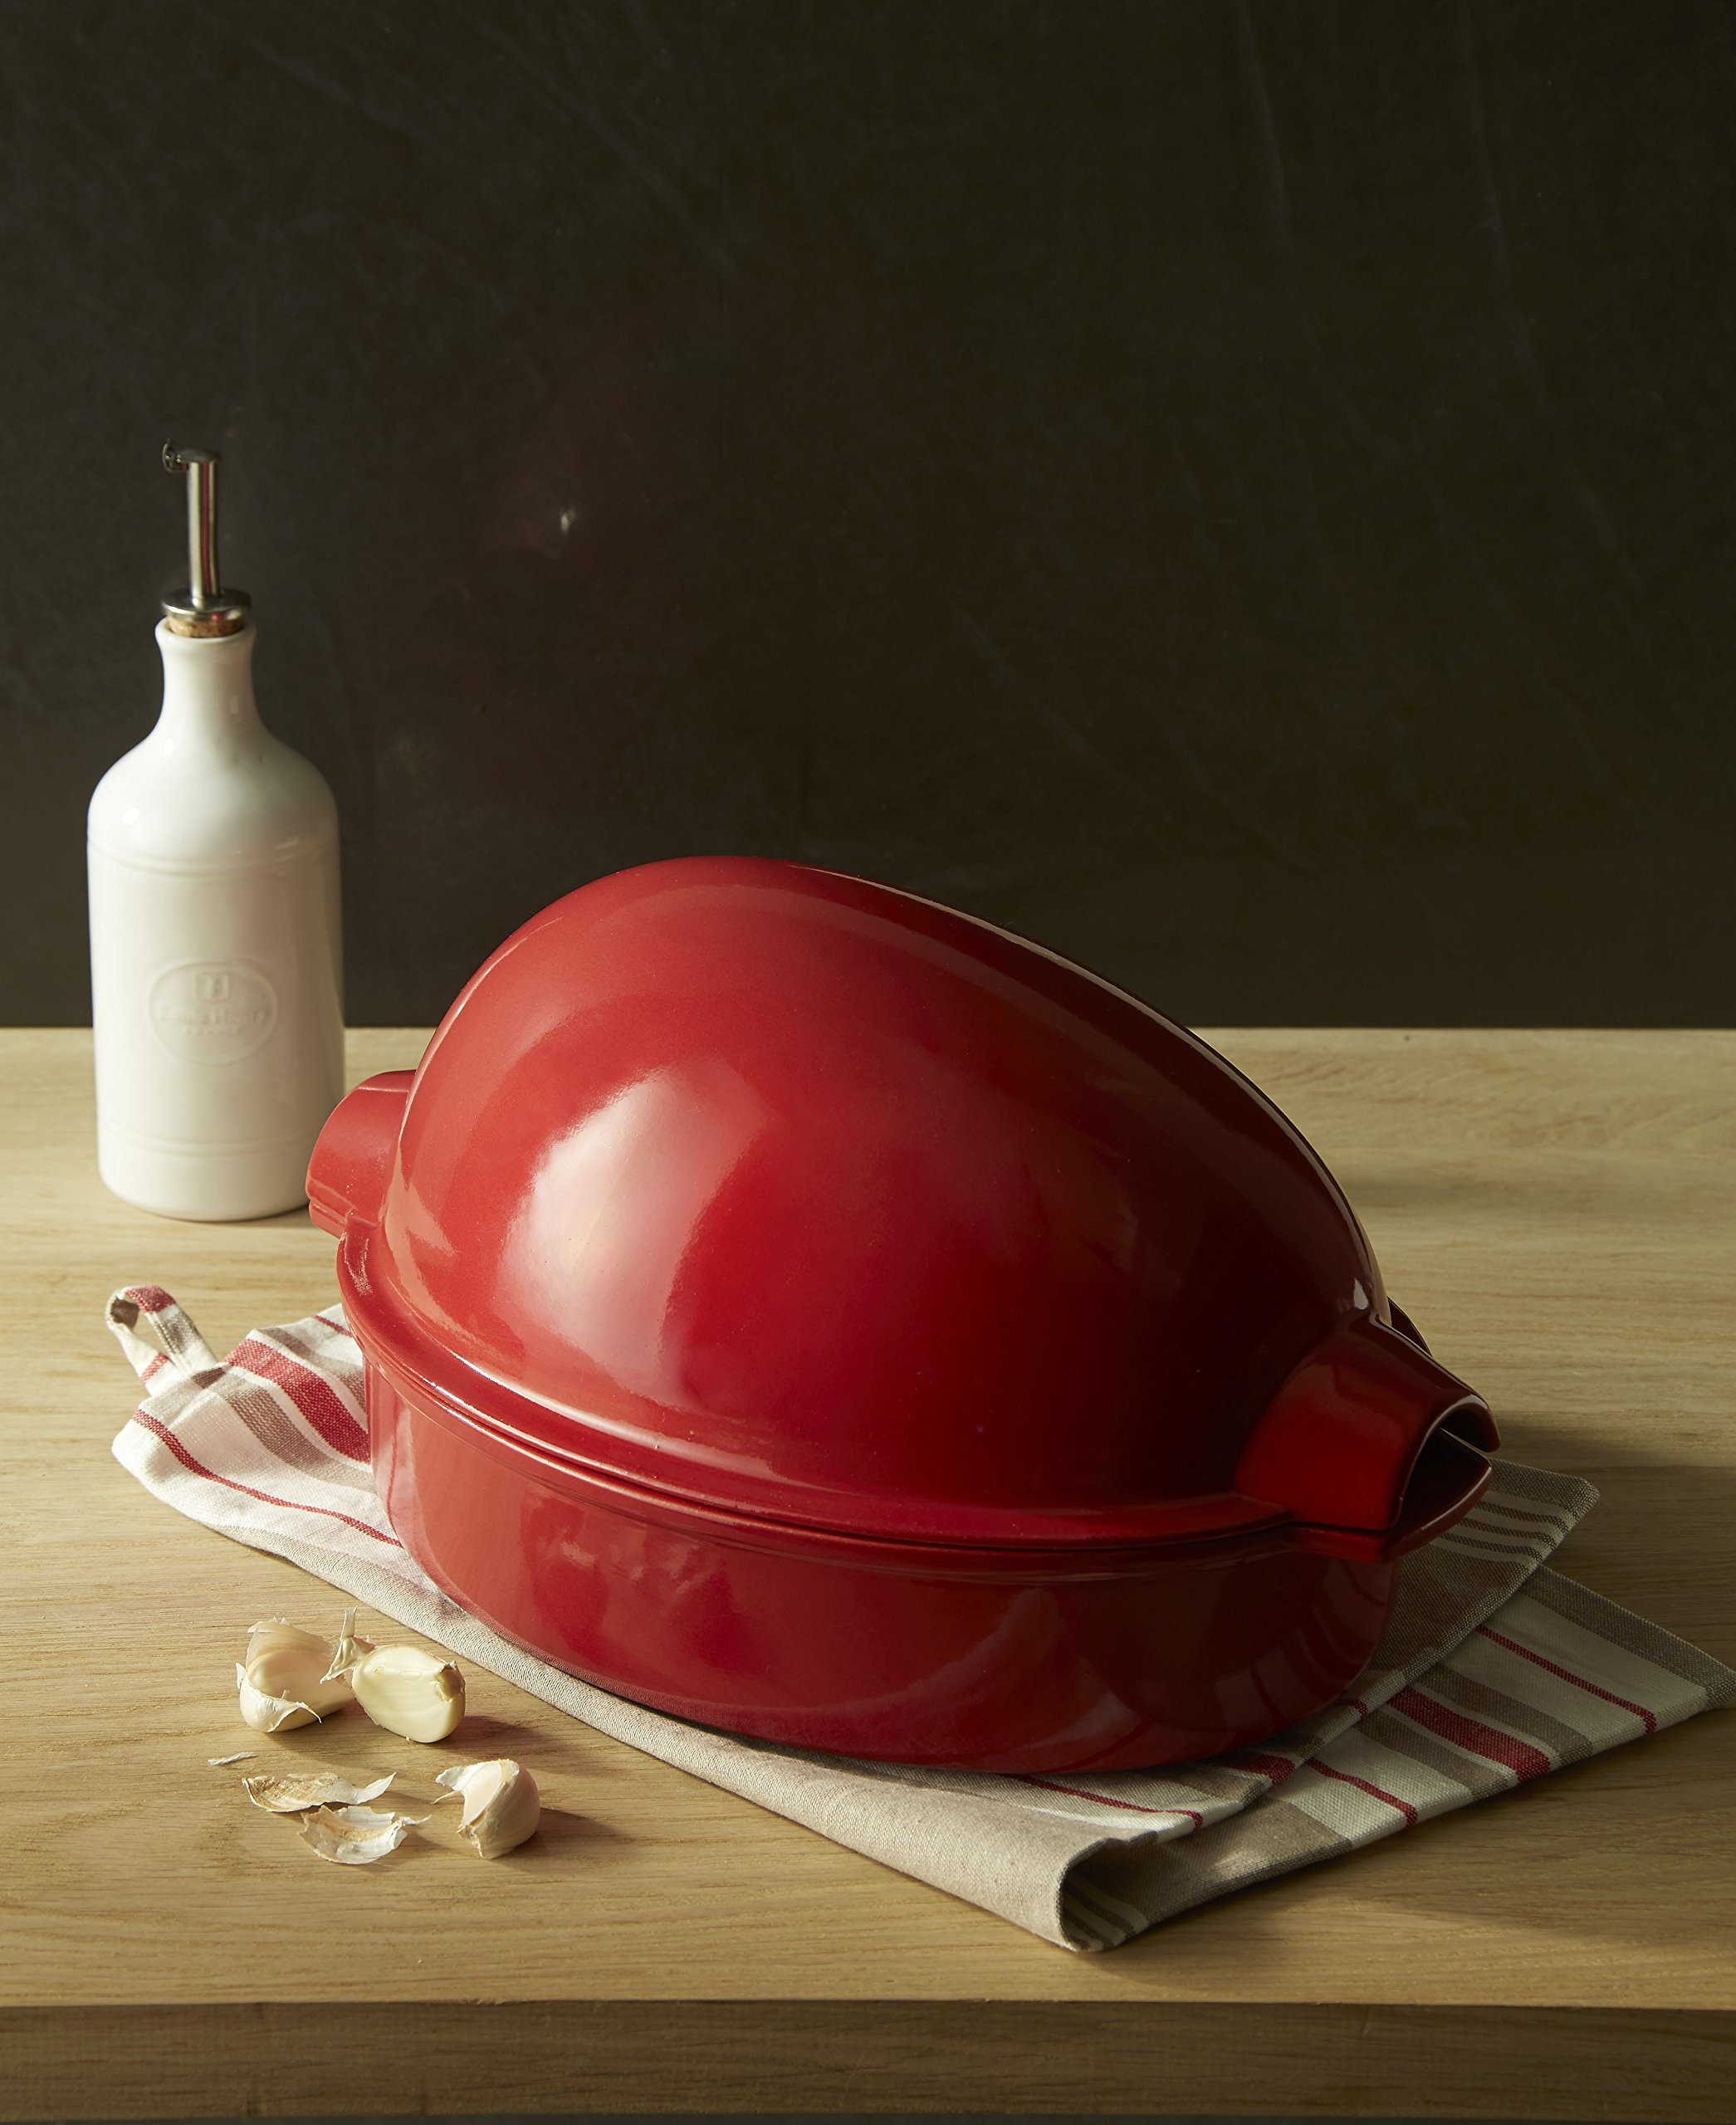 Emile Henry Made In France Chicken Baker, 13.5'' by 9.5'' by 7.5'', Burgundy Red by Emile Henry (Image #5)